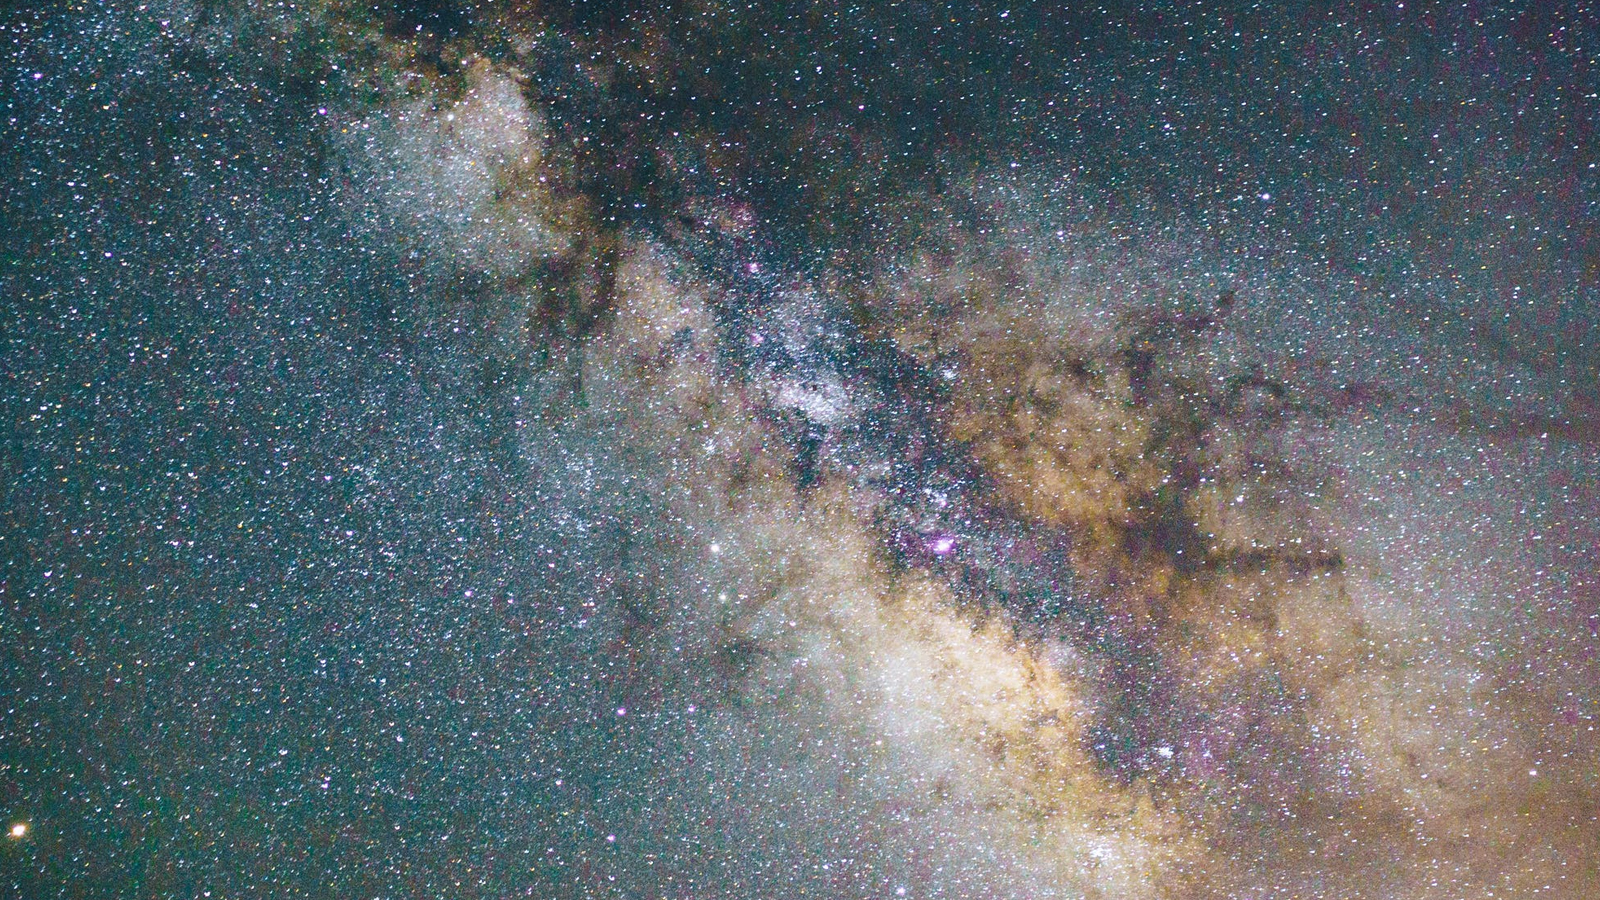 Points to Remember When Making the Case for God's Existence